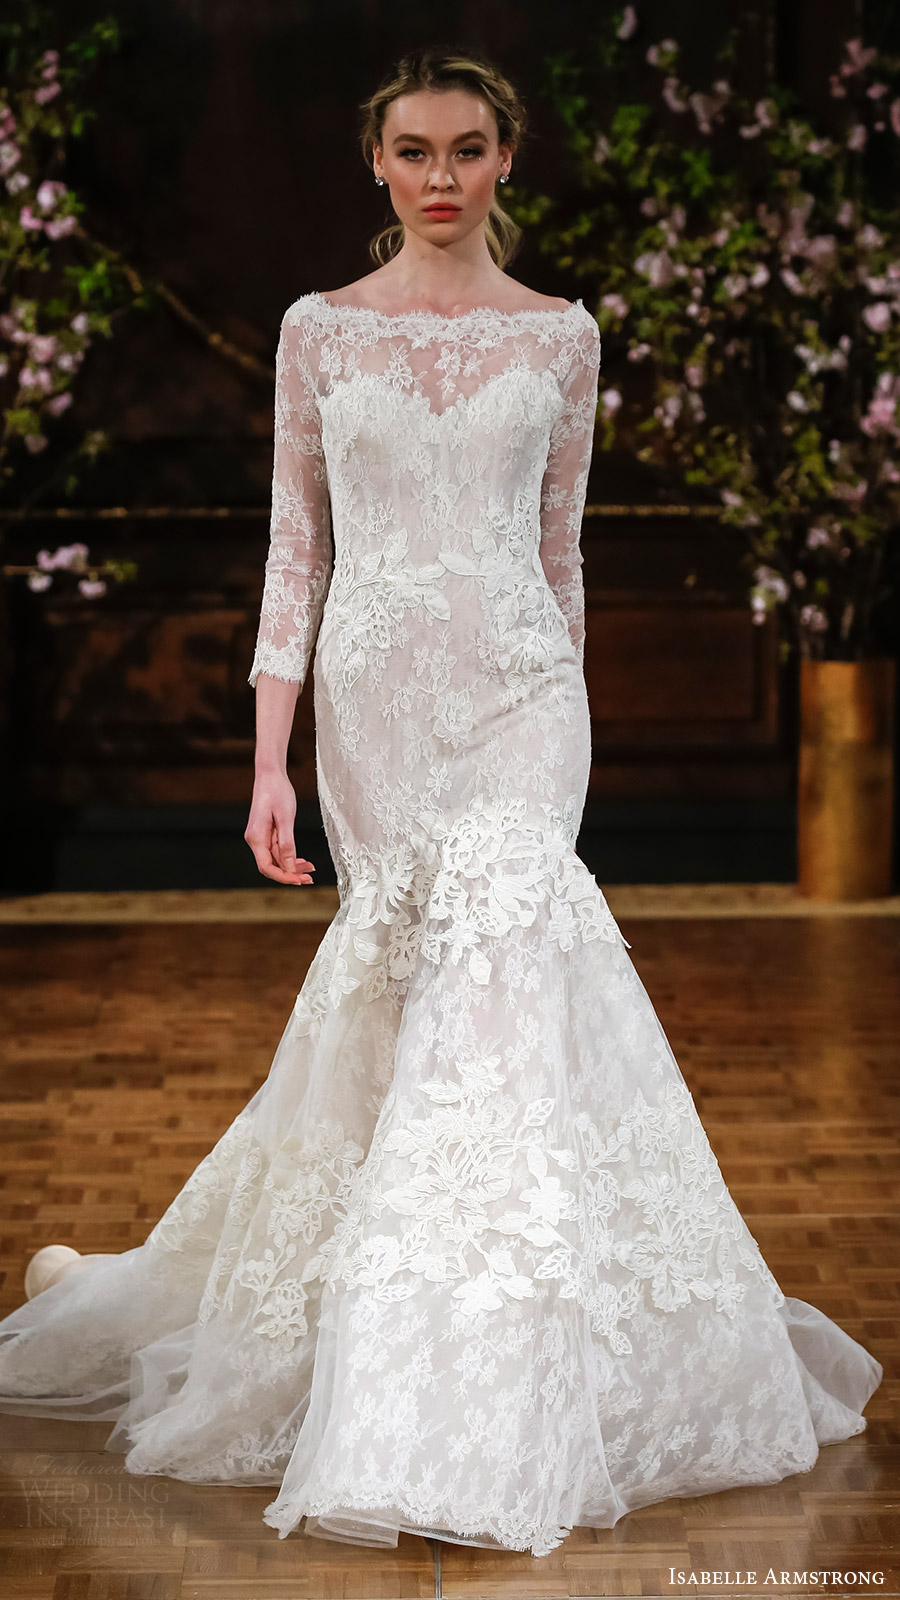 Isabelle armstrong spring 2017 wedding dresses wedding for Elegant wedding dresses 2017